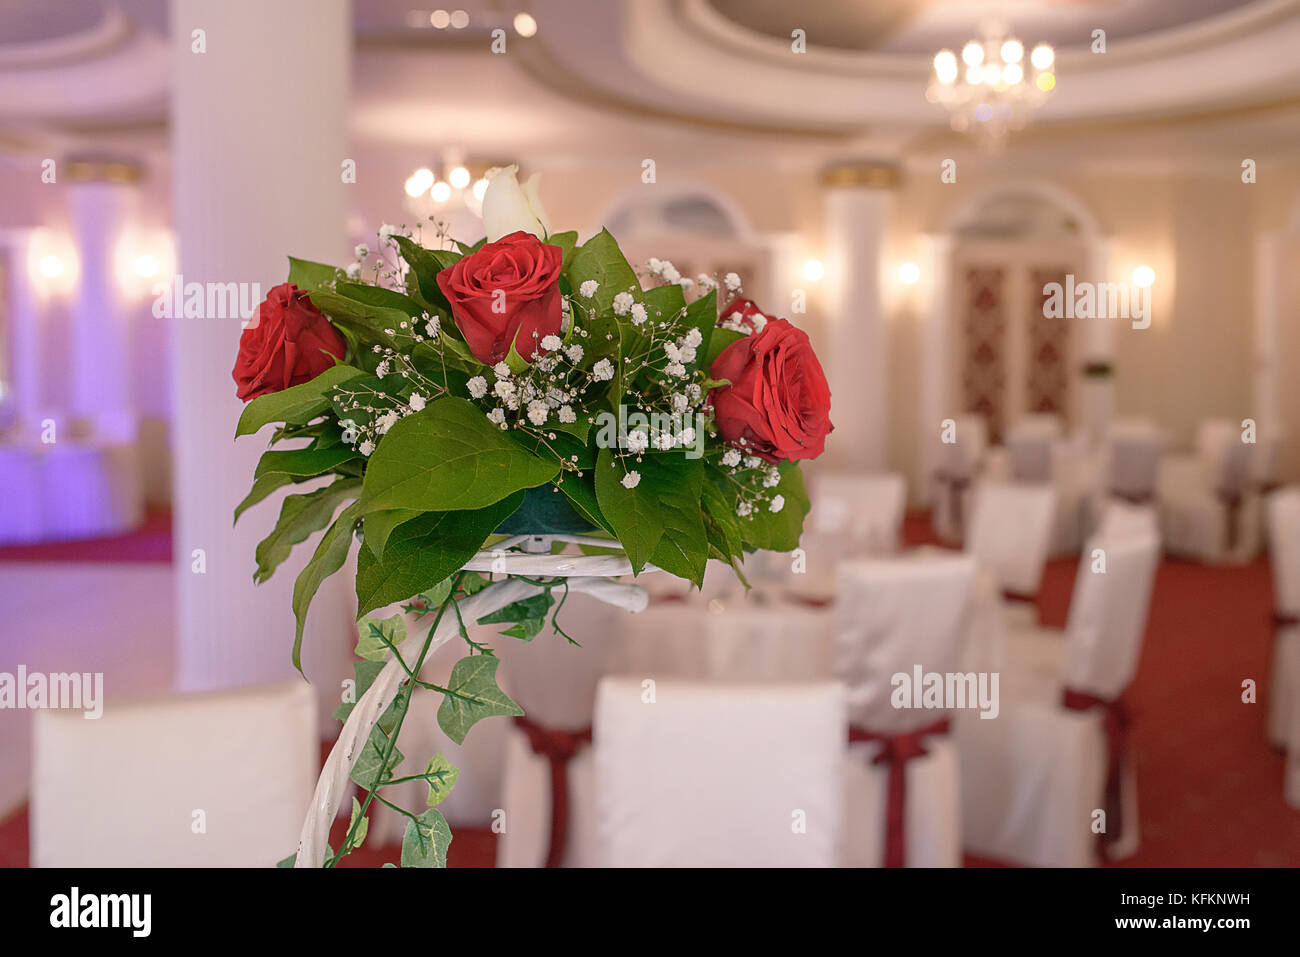 Red Roses Centerpiece At A Wedding Reception Decorative Display Of